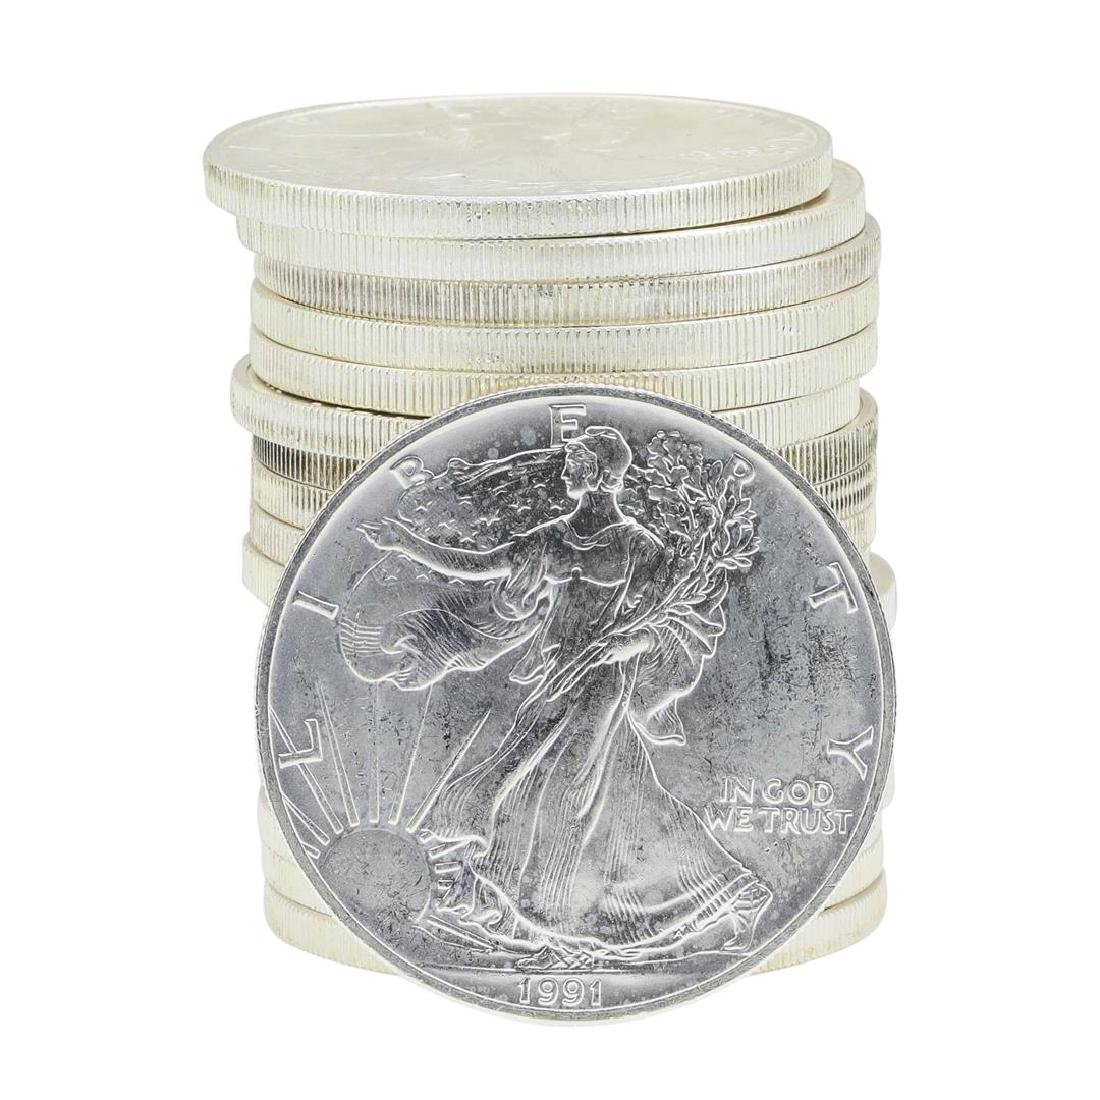 Roll of (20) 1995 $1 American Silver Eagle Coins